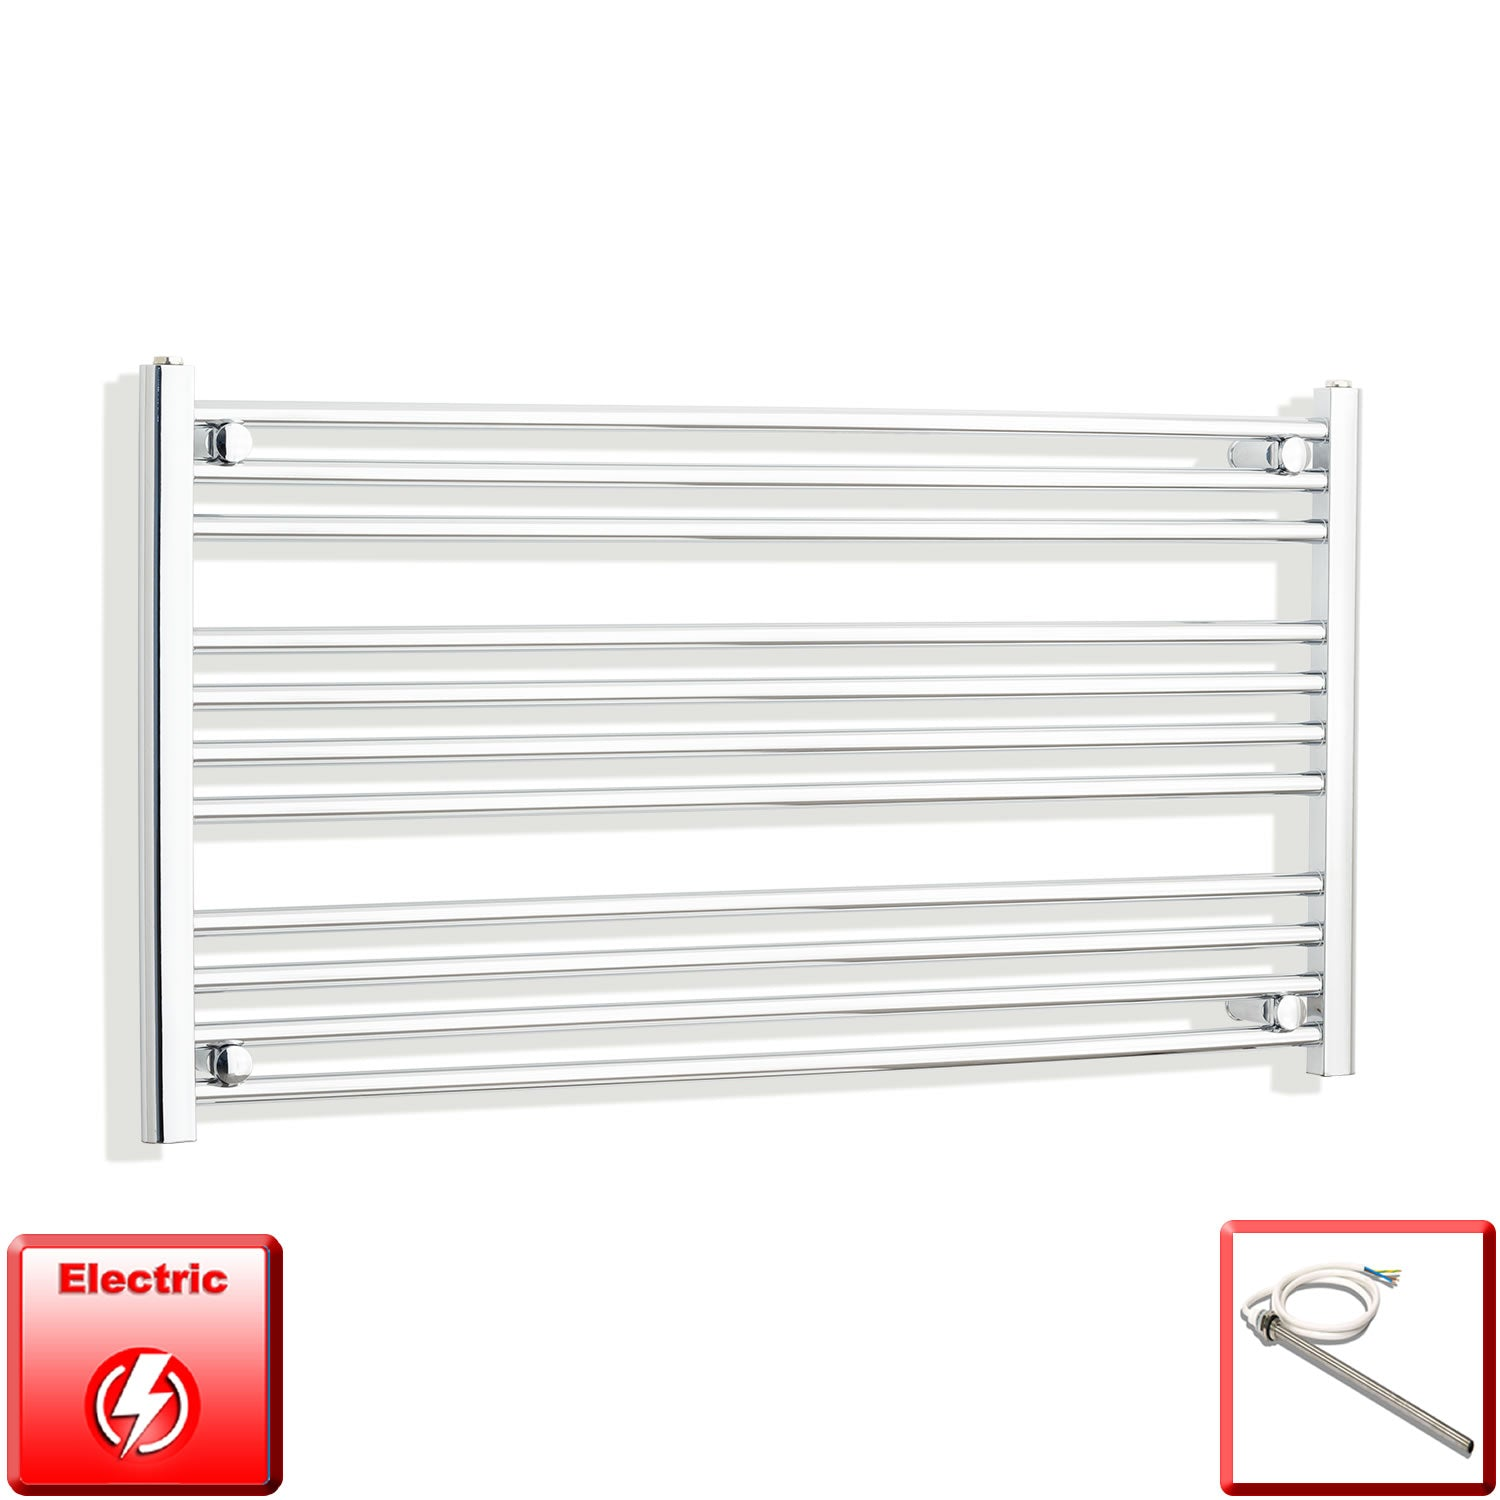 1300mm Wide 600mm High Pre-Filled Chrome Electric Towel Rail Radiator With Single Heat Element